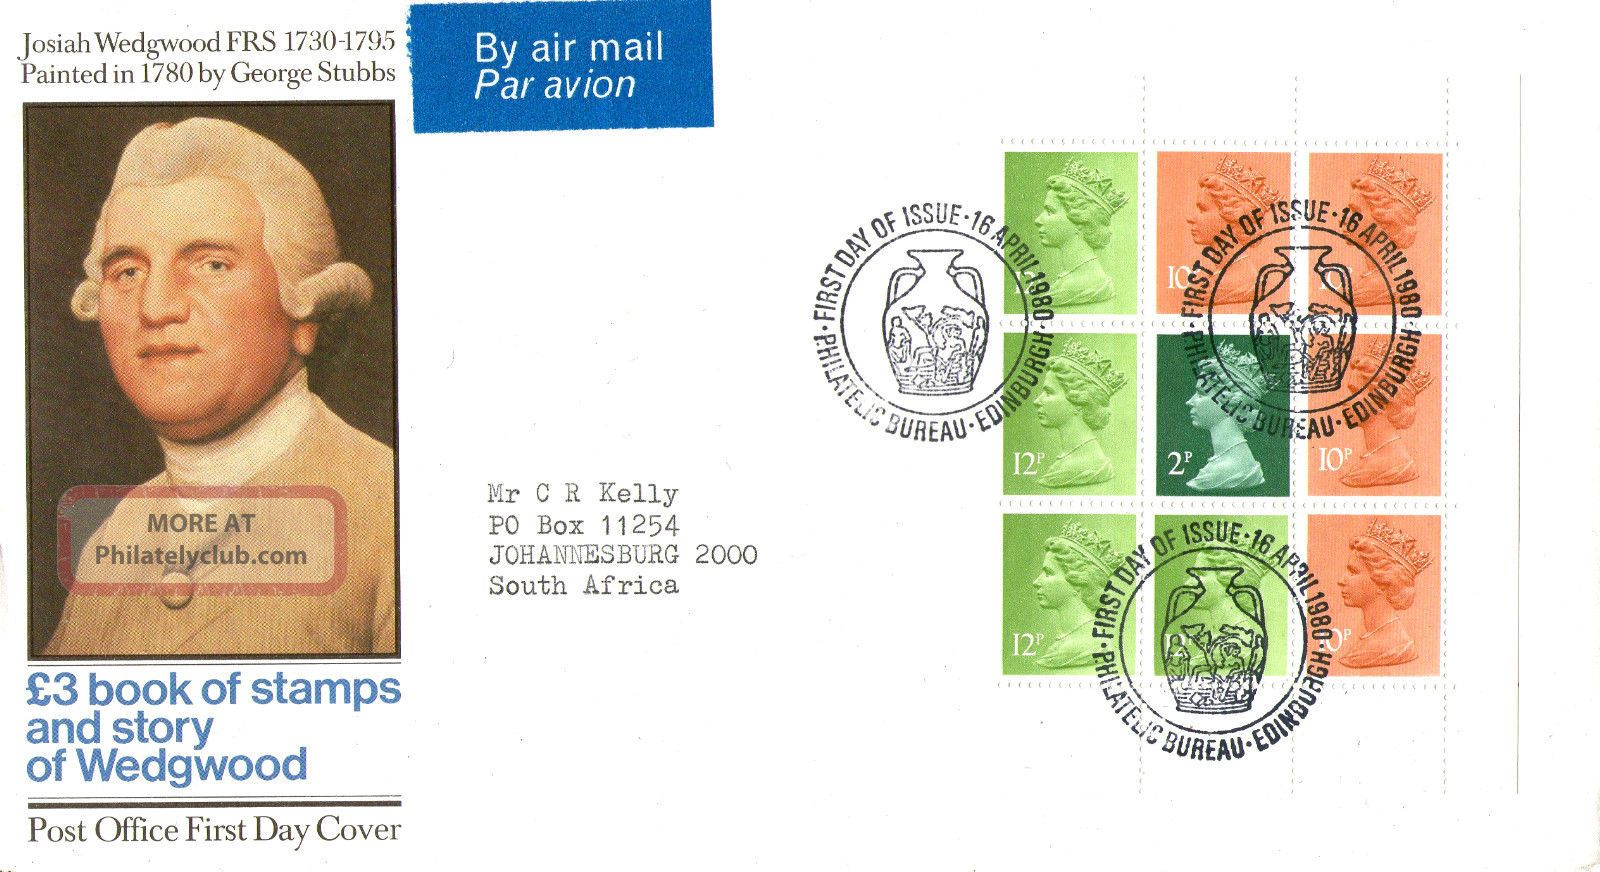 16 April 1980 Wedgwood Booklet Pane Post Office First Day Cover Bureau Shs Topical Stamps photo